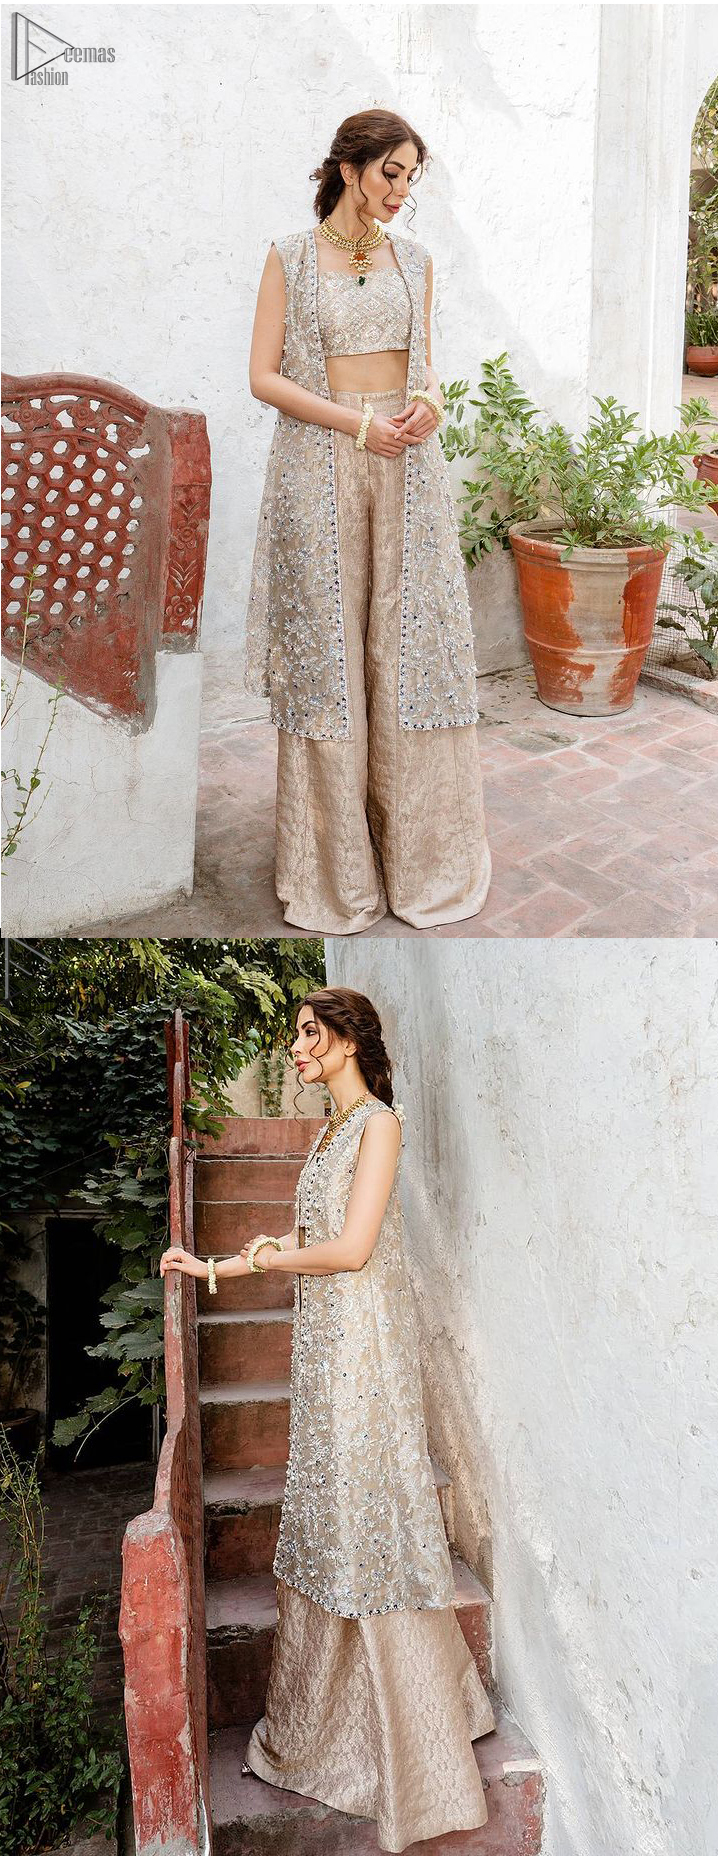 The dress is made with pure Katan Banarasi Jamawar that comes with a magnificent net choli followed by the perfect palazzo pants.Pakistani Party Dress - Beige Open Shirt n Blouse - Palazzo Pants. This attractive semi-formal dress would delight your day either at party wear.